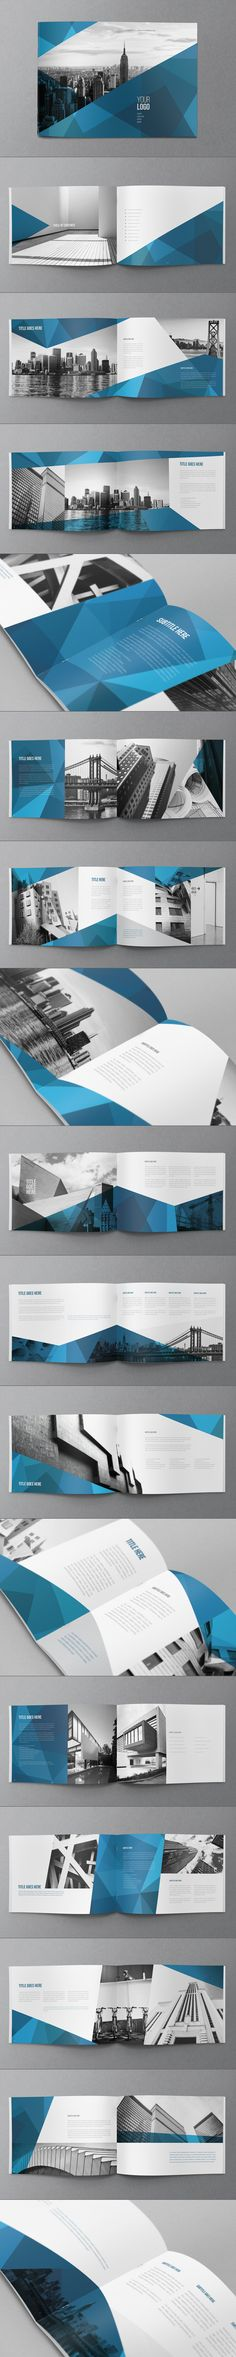 Abstract Architecture Brochure. Download here: https://graphicriver.net/item/abstract-architecture-brochure/7385718?ref=abradesign #design #brochure